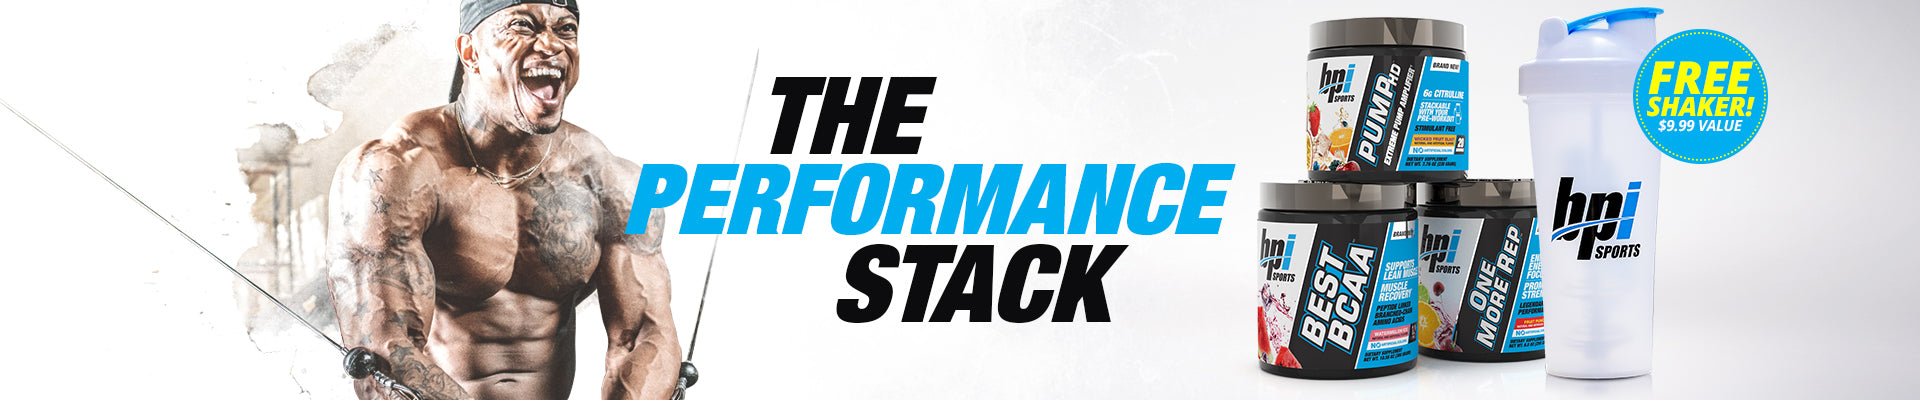 The Performance Stack Promo